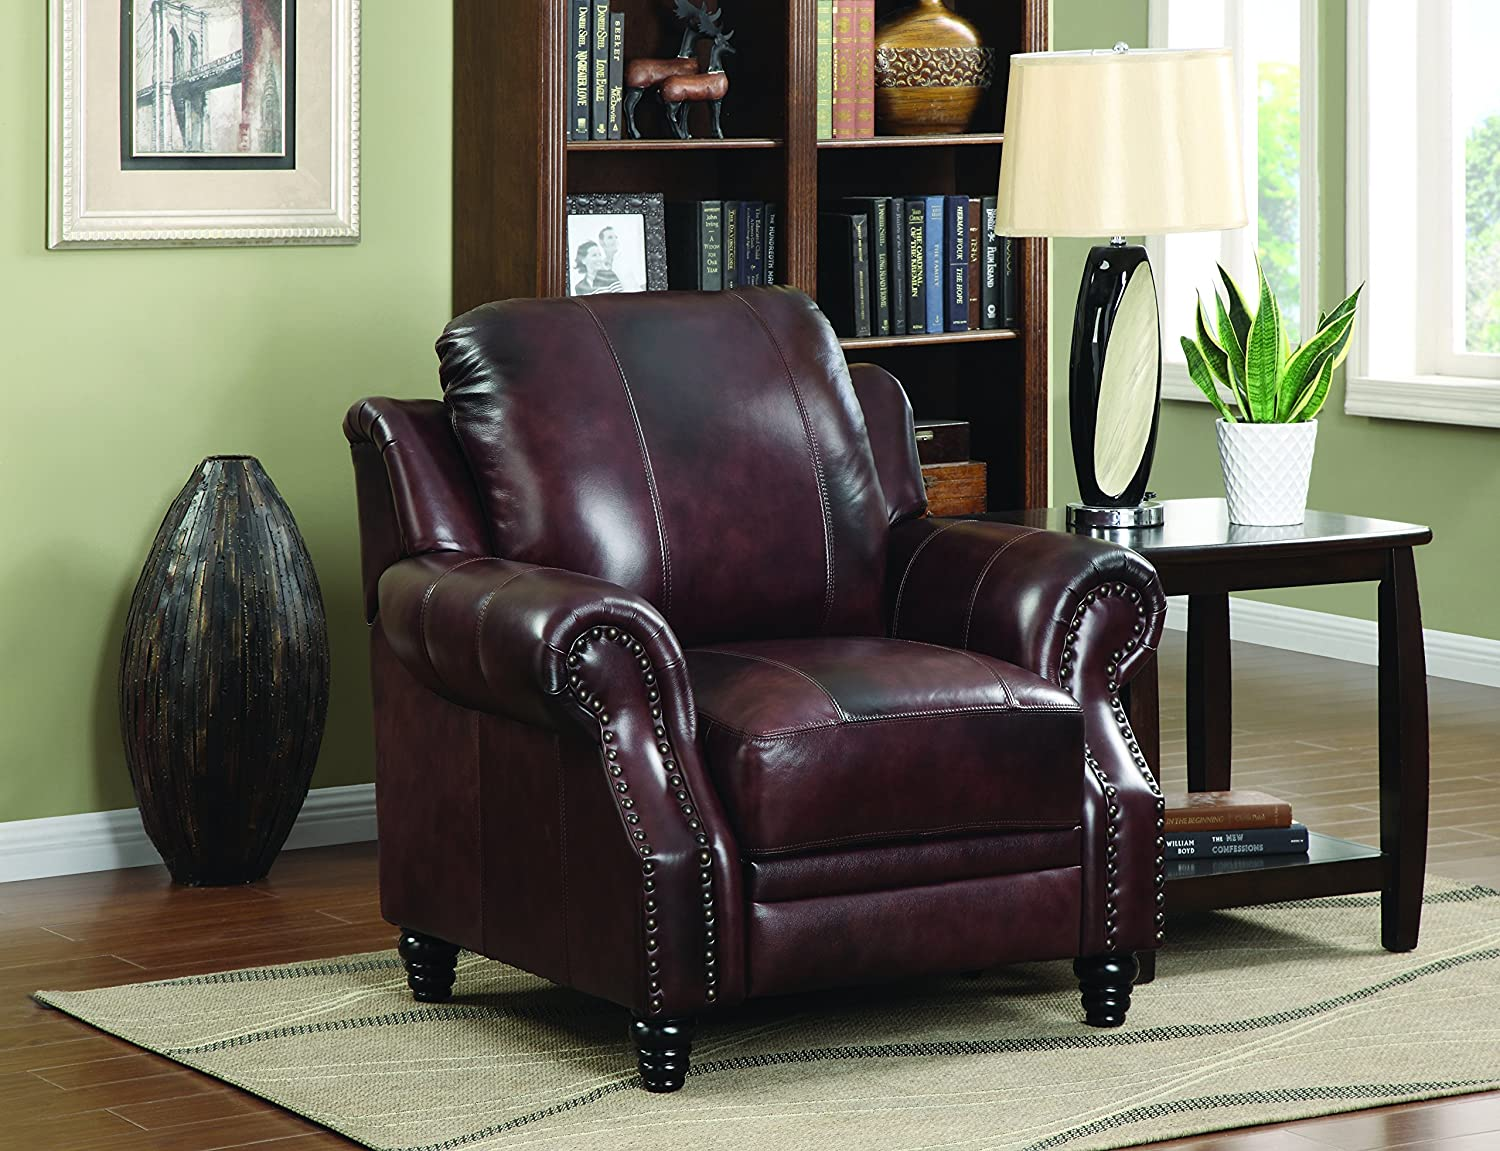 Coaster Home Furnishings Princeton Rolled Arms Push Back Recliner Burgundy